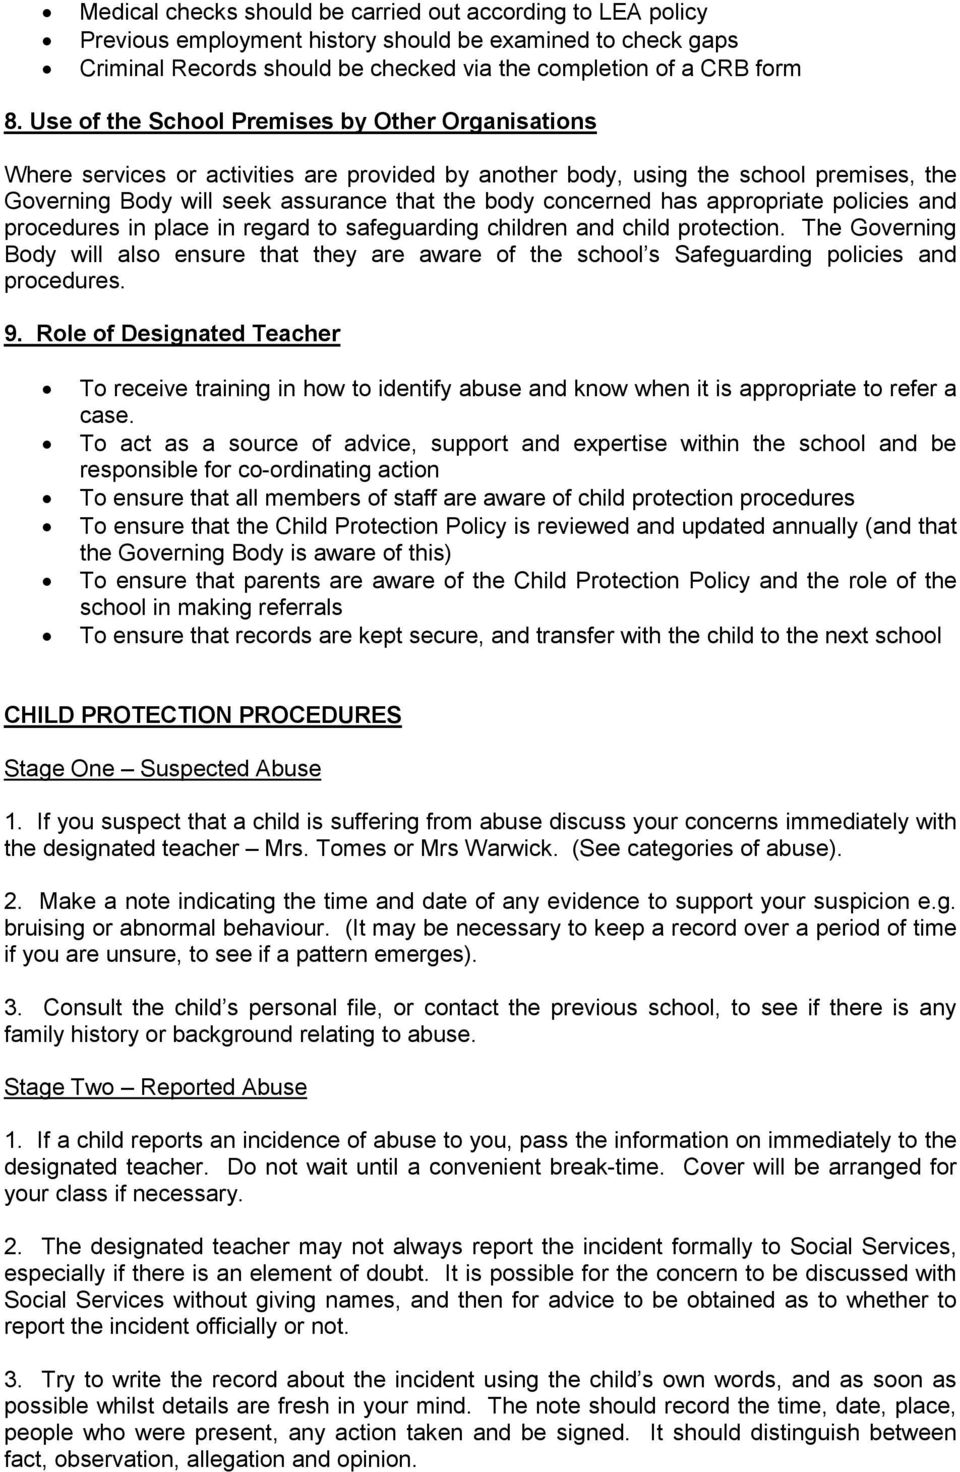 has appropriate policies and procedures in place in regard to safeguarding children and child protection.